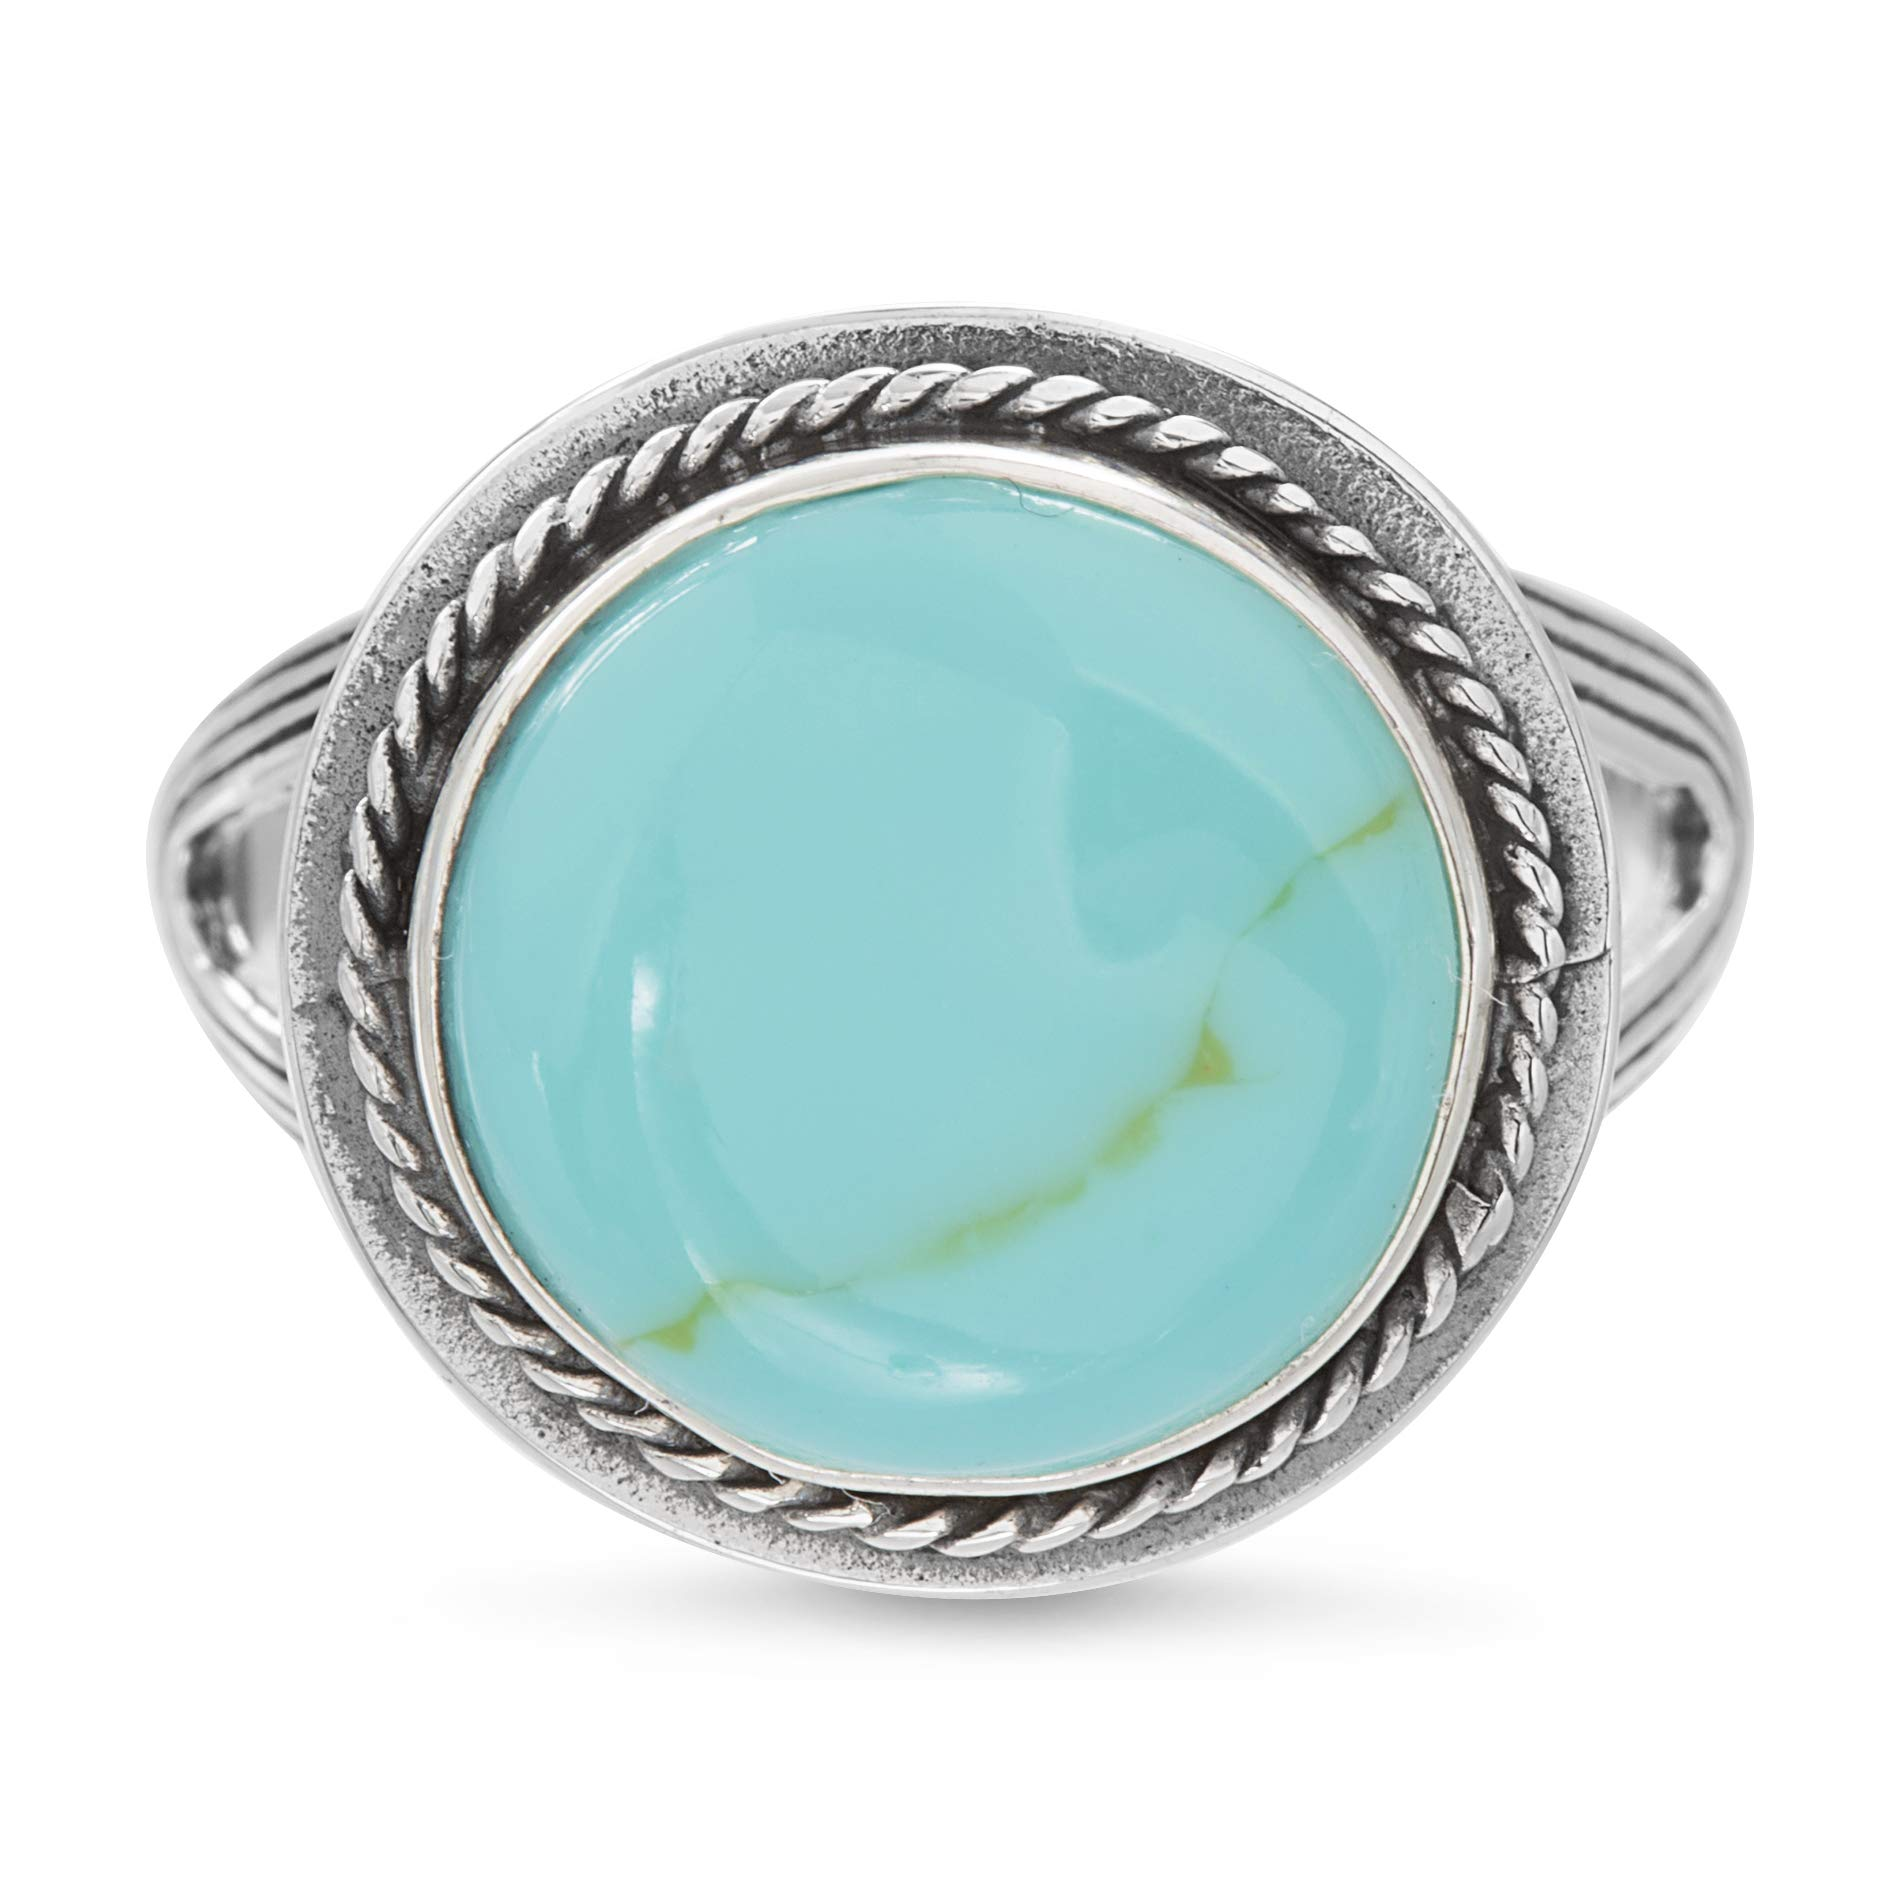 WILLOWBIRD Rhodium Plated Sterling Silver Simulated Turquoise Rope Edged Ring for Women (Various Sizes)